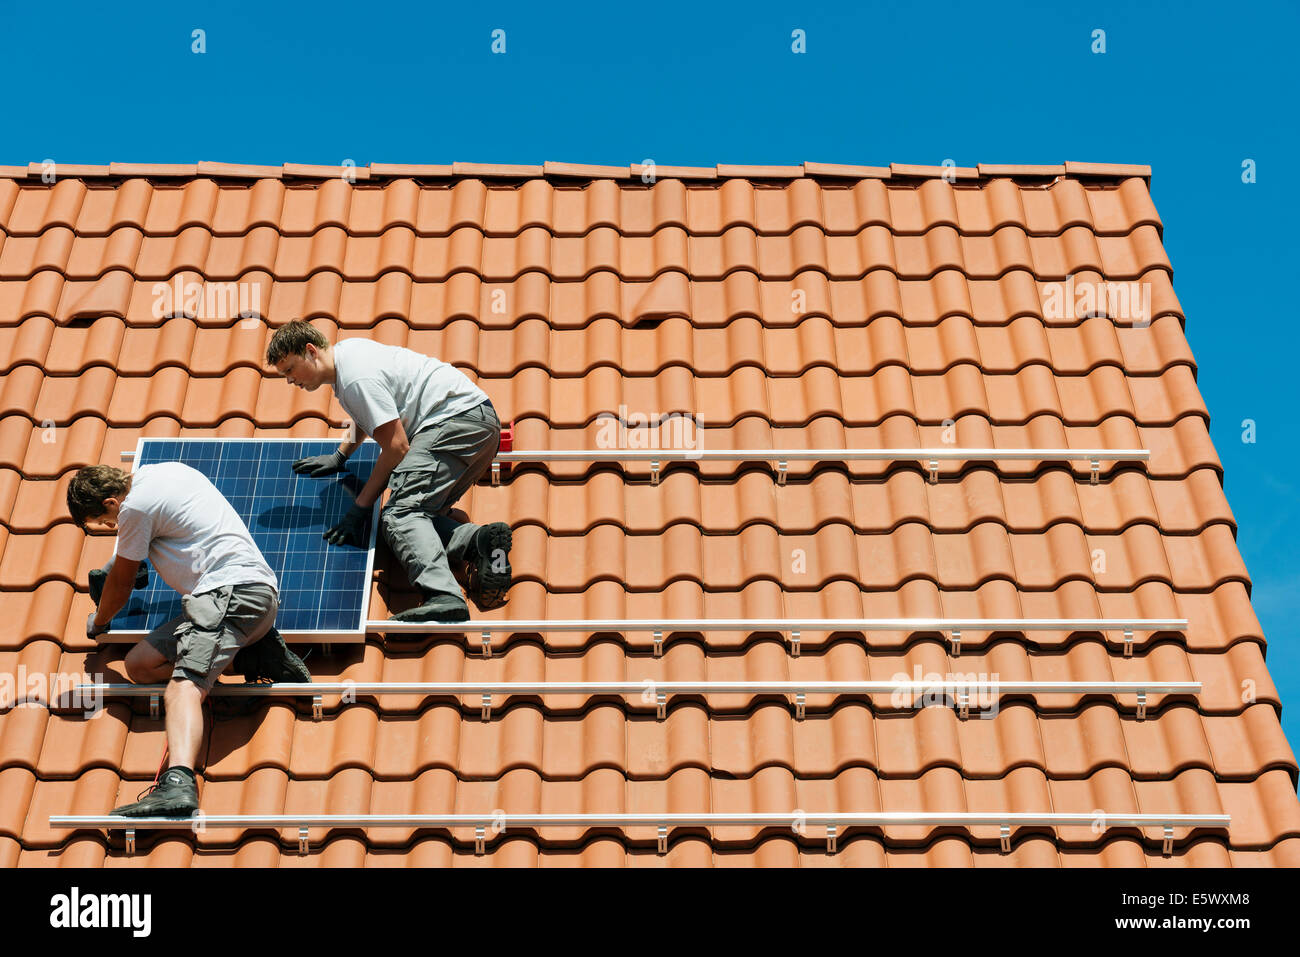 Workers installing solar panel on roof framework of new home, Netherlands - Stock Image